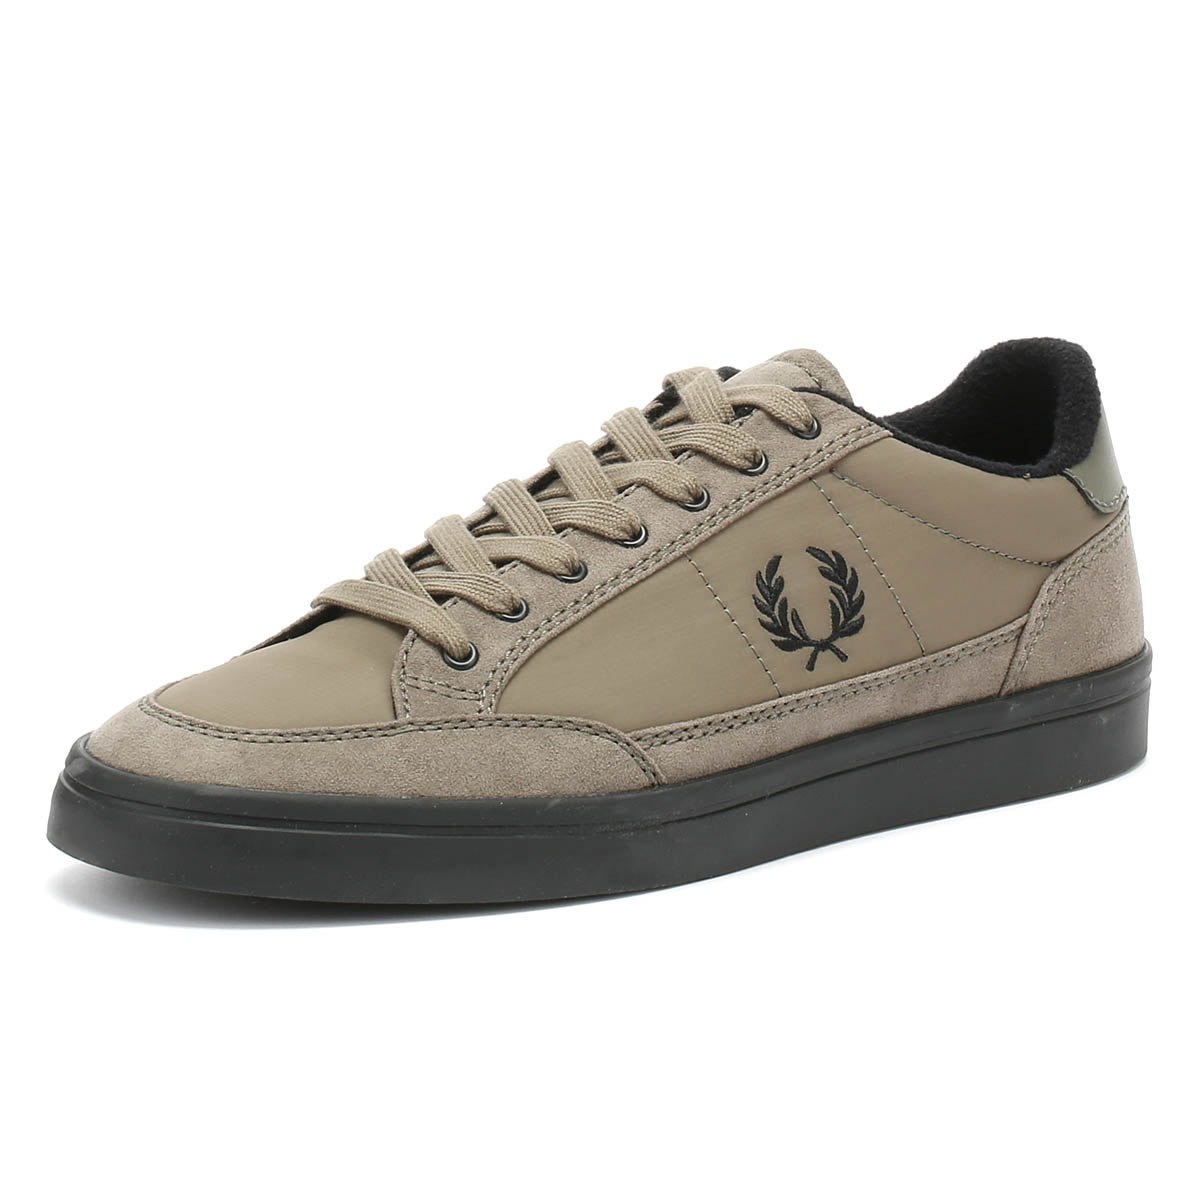 2620d3c81 Details about Fred Perry Mens Trainers Dust Beige Deuce Winterised  Microfibre Casual Shoes